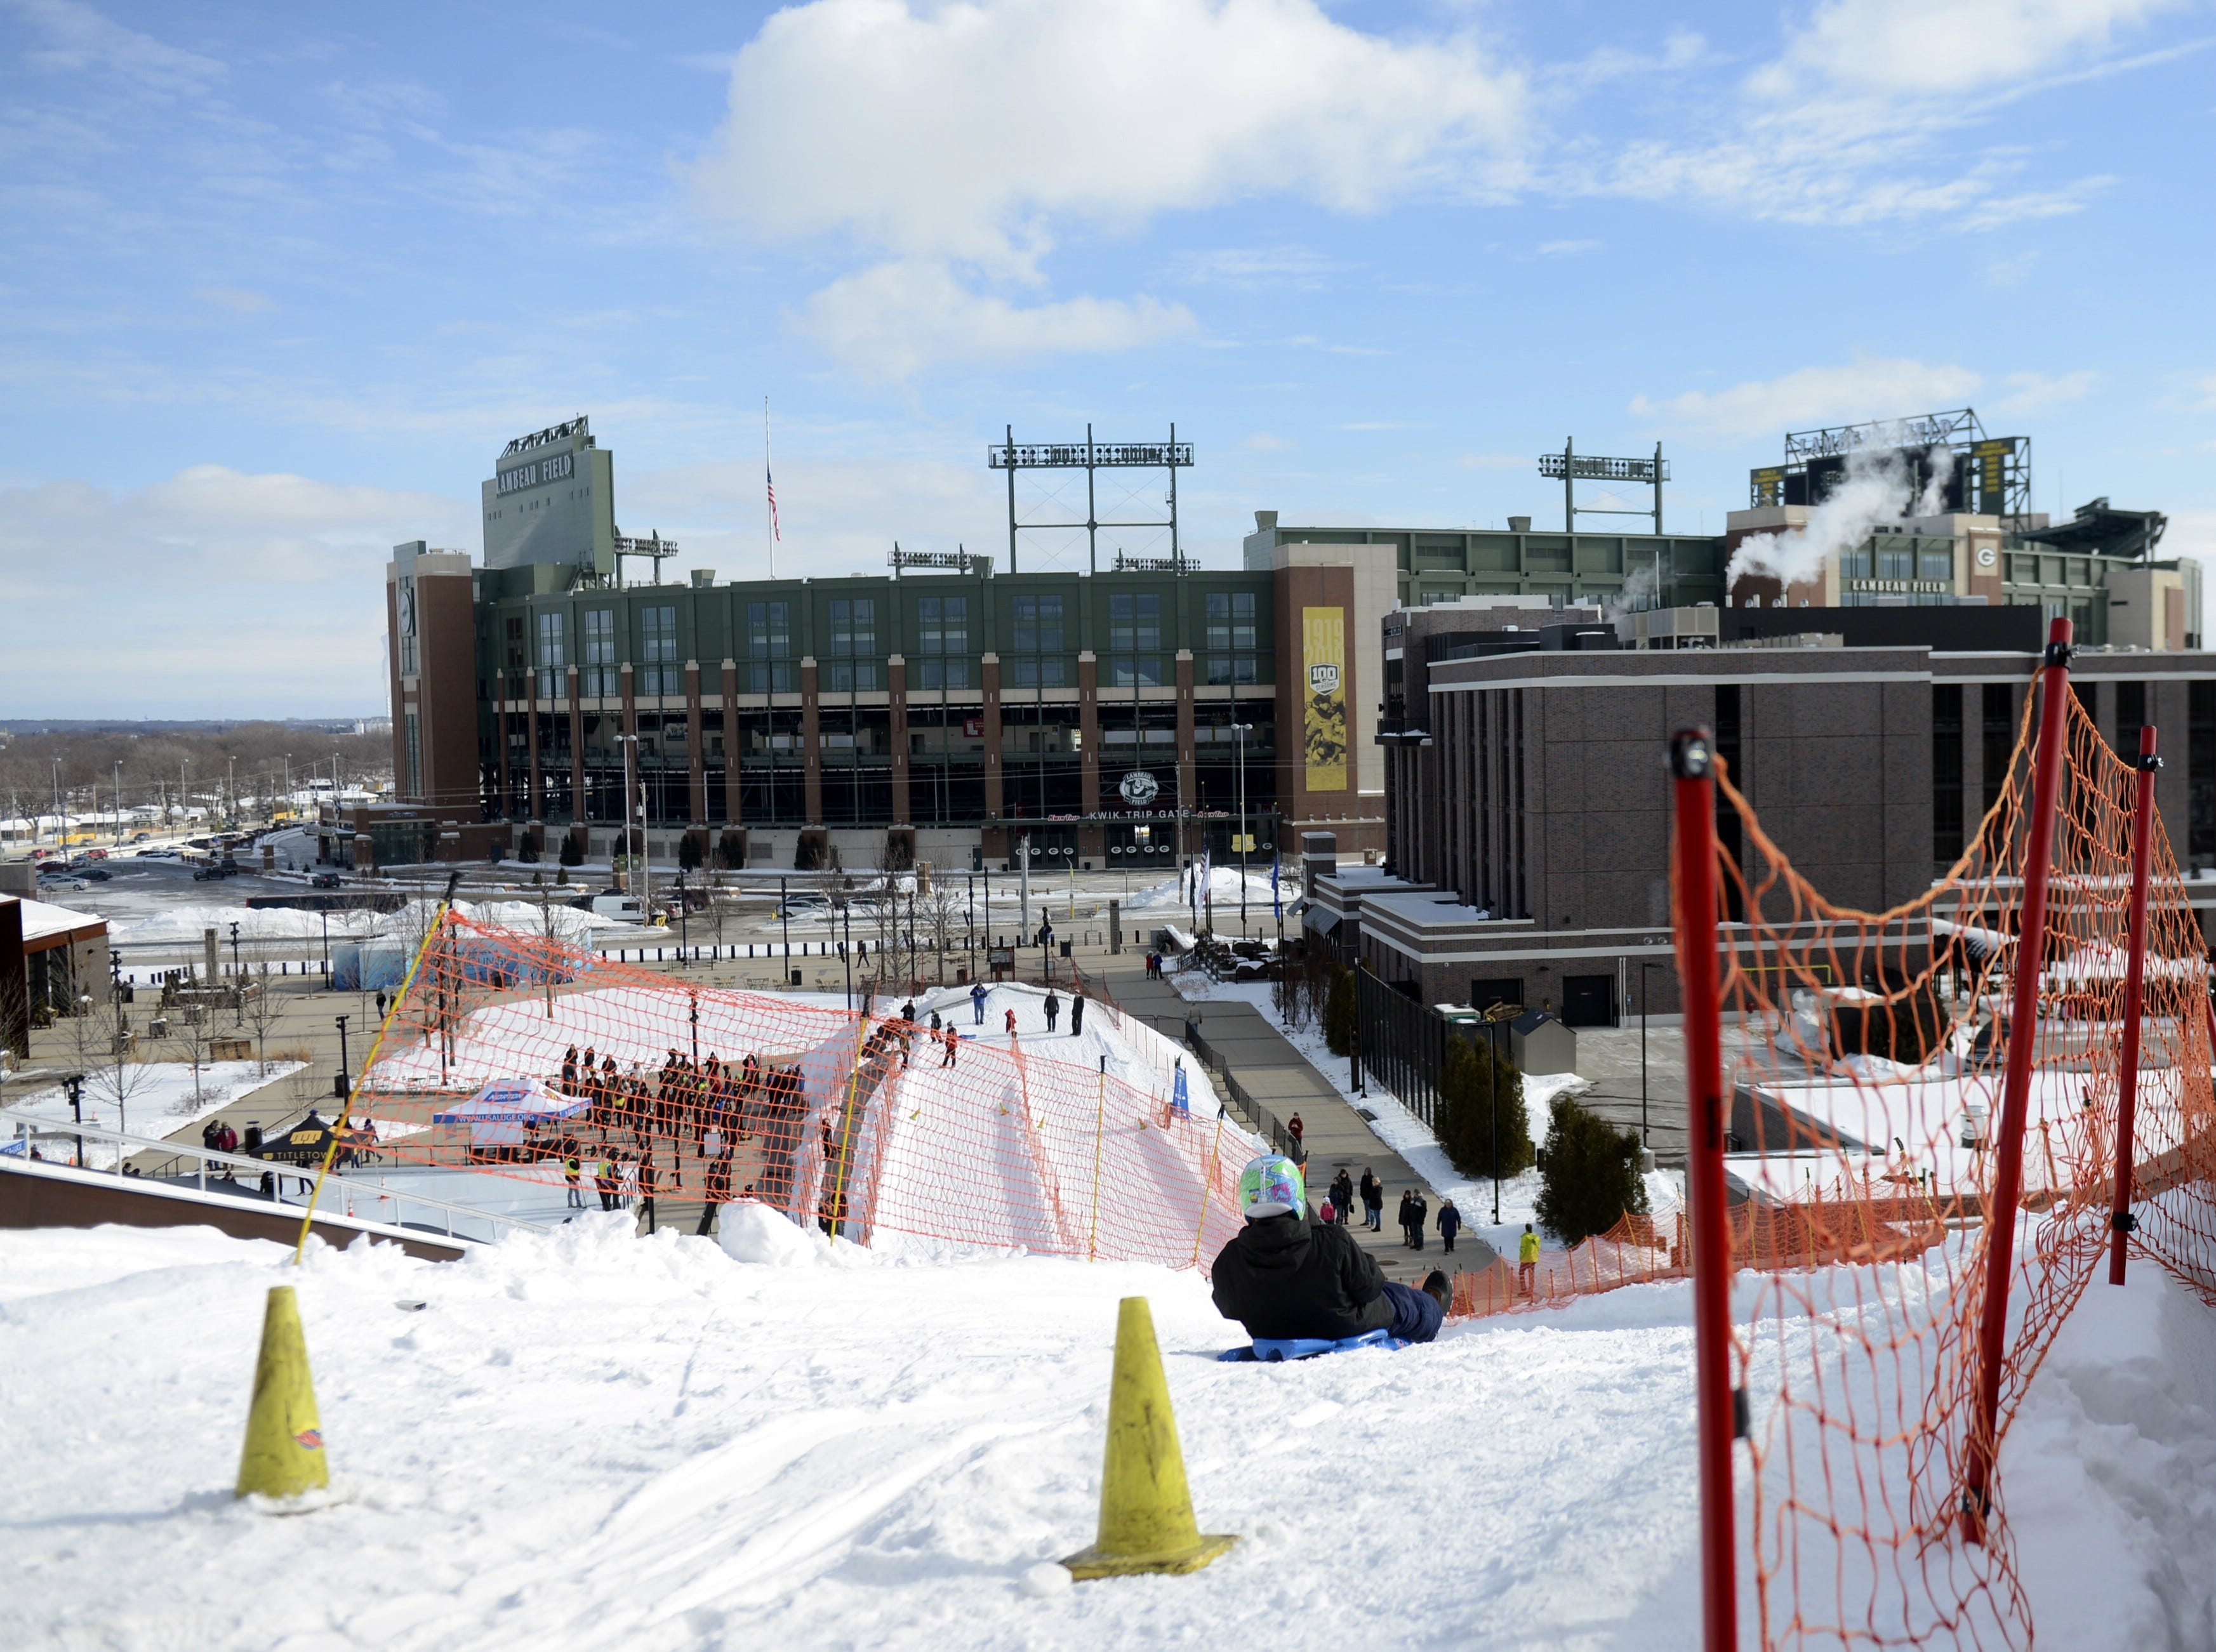 View from the top of Ariens Hill, turned into a luge course for the Titletown Winter Games on Saturday, Feb. 16, 2019.